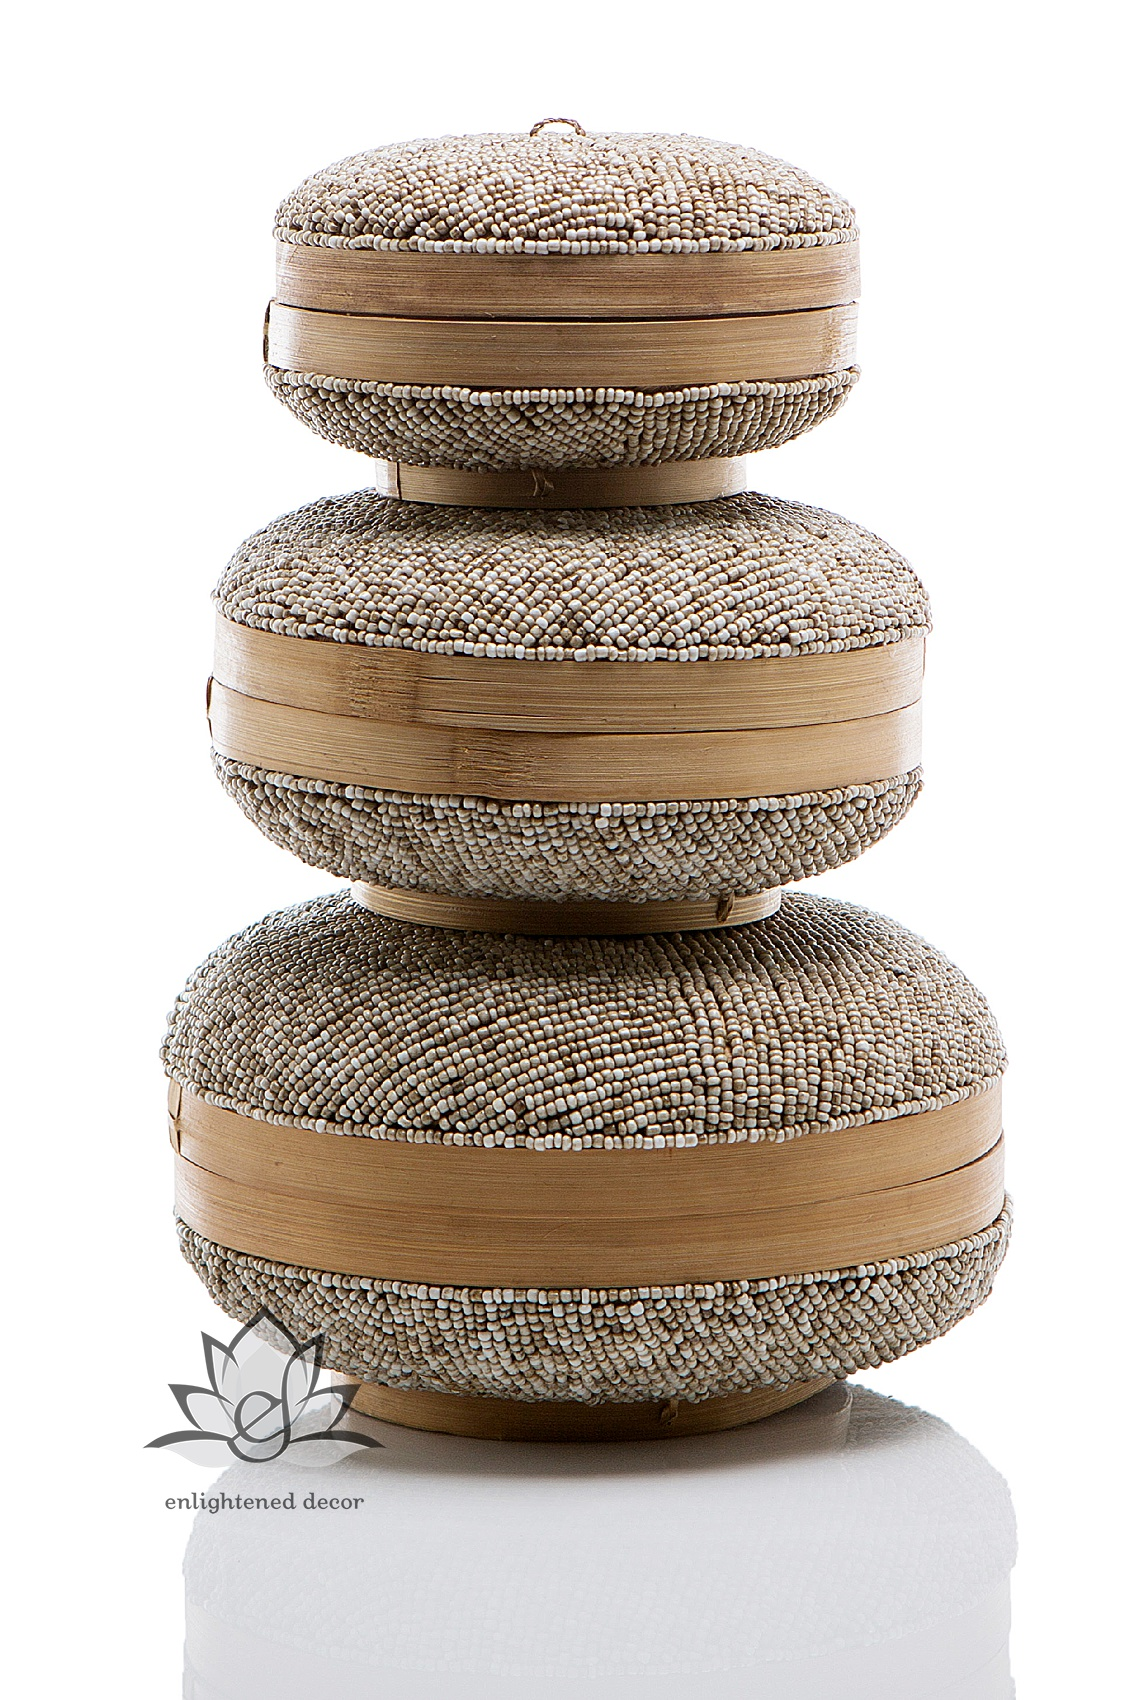 #49-3 Beaded Boxes, Round, Set of 3, Sol